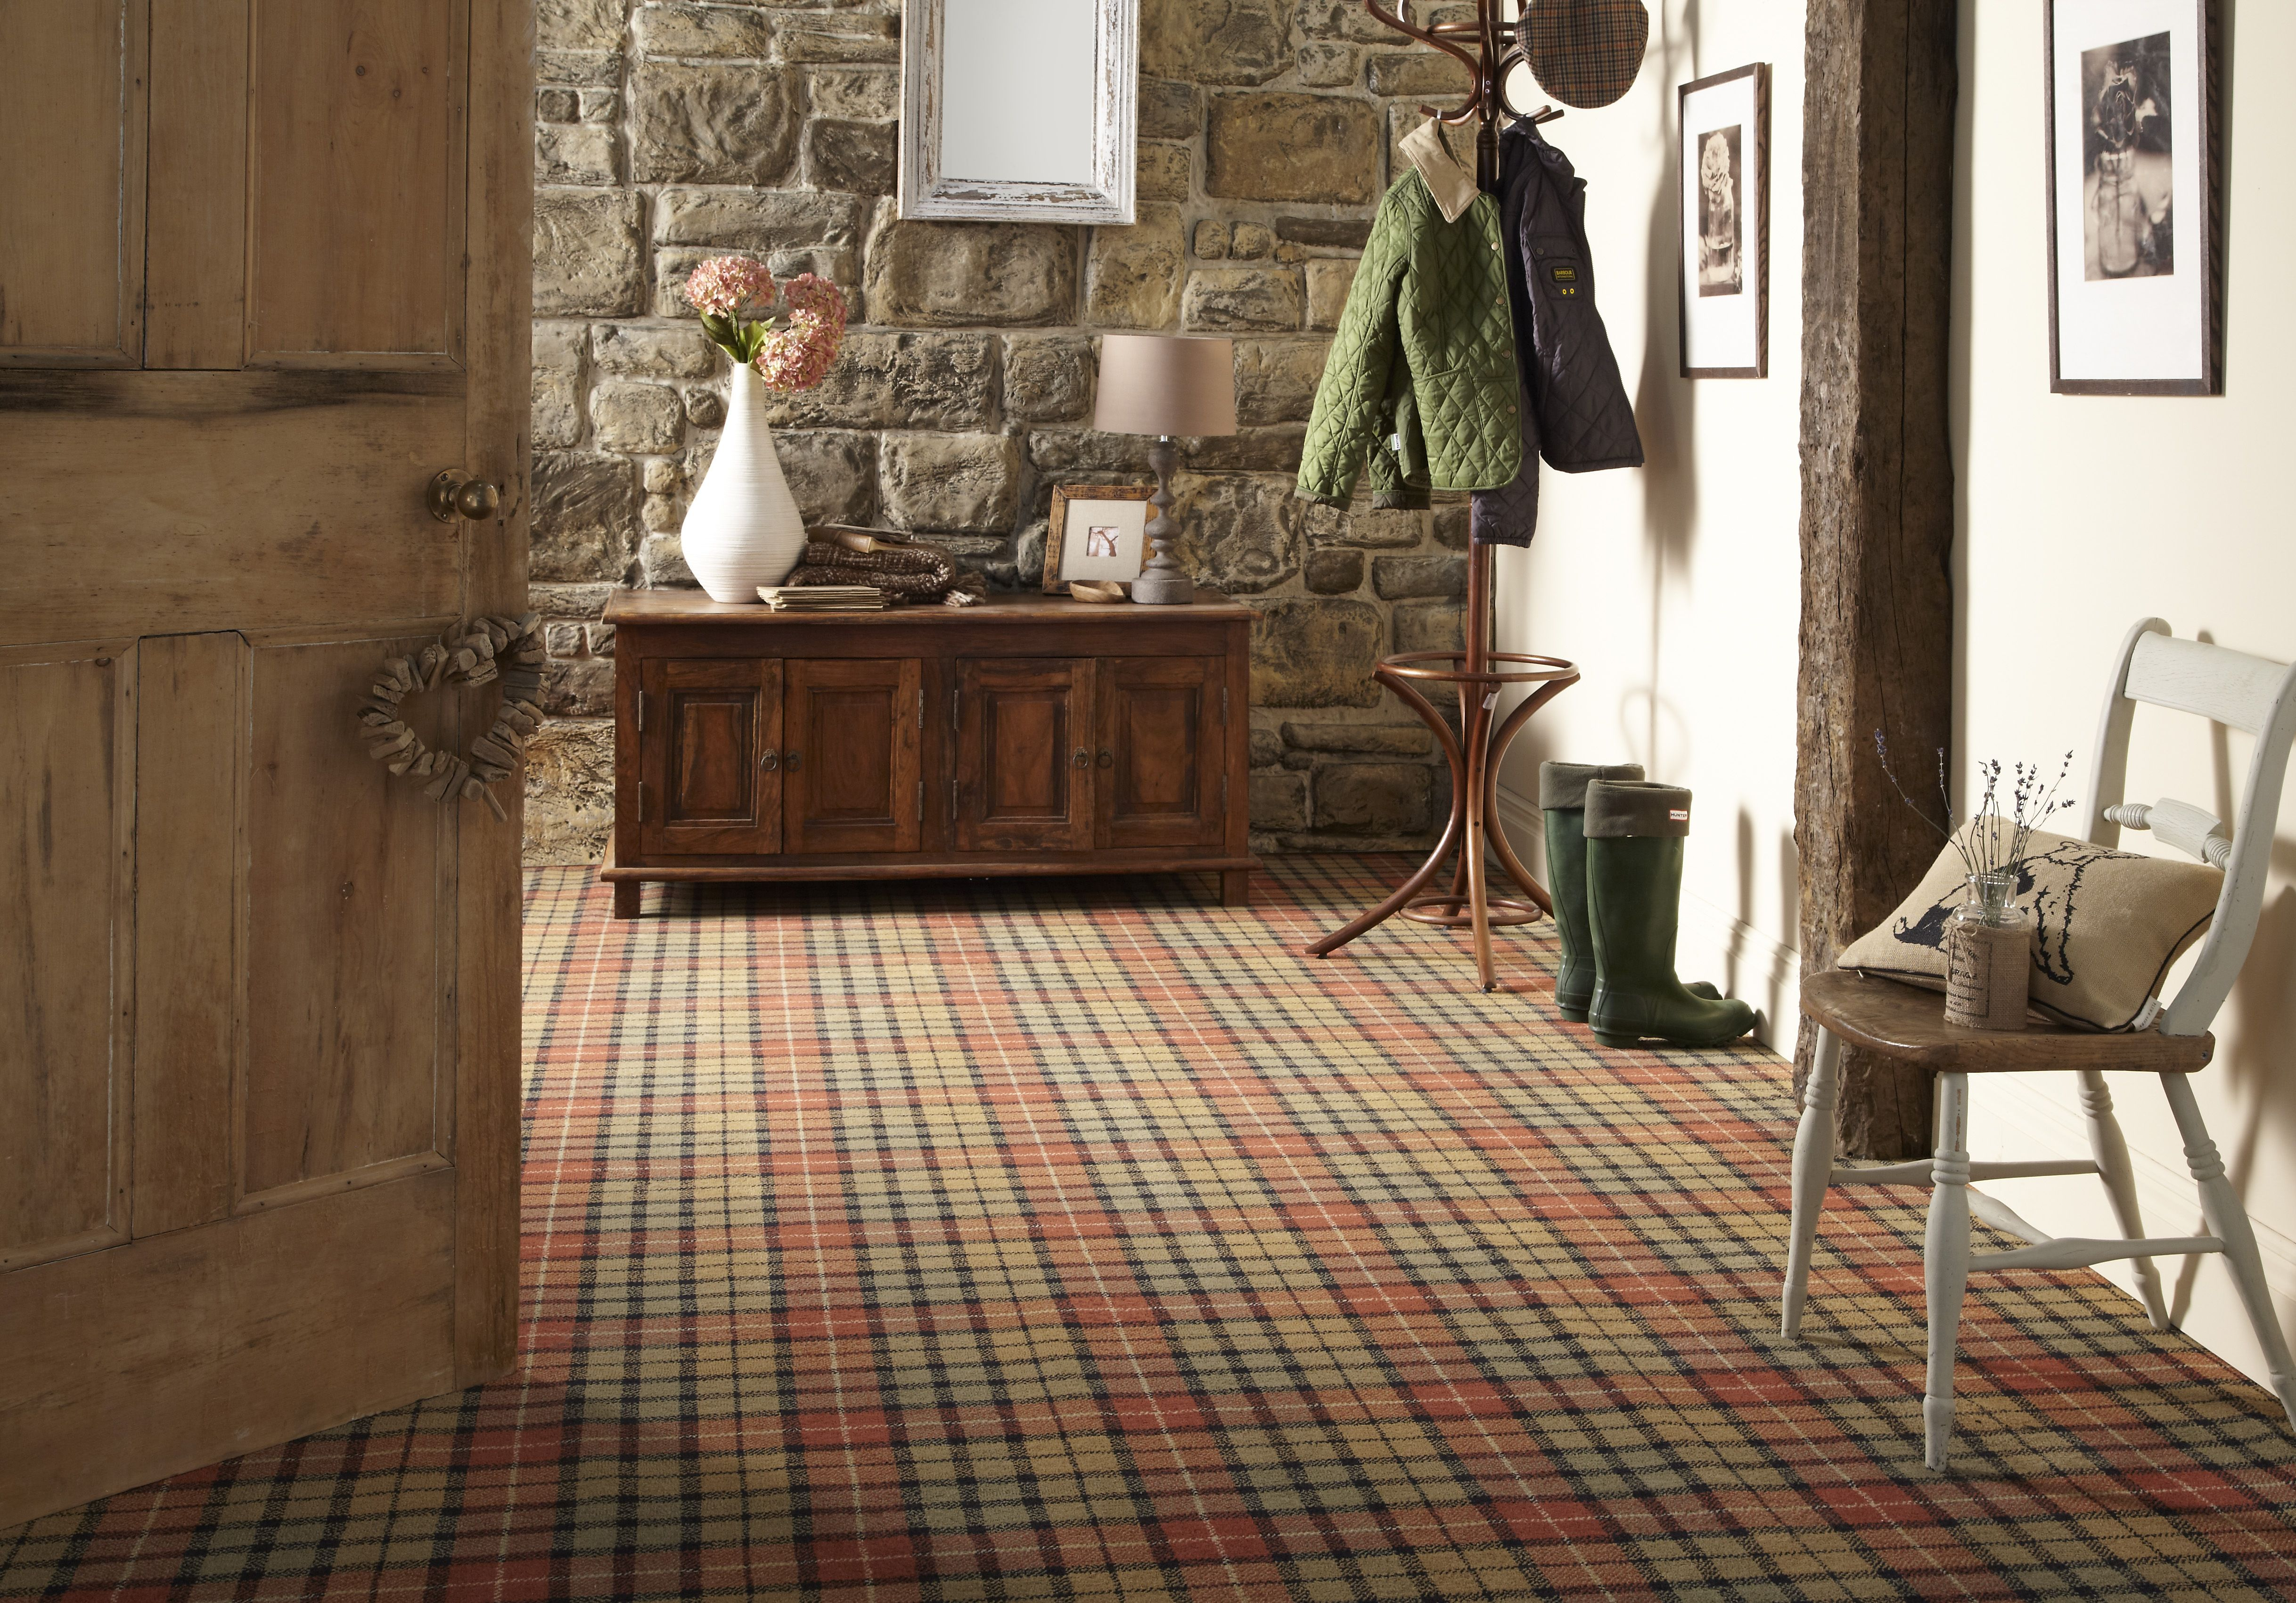 We Re Celebrating Nationatartanday In Style With Our Huge Range Of Tartan Carpets Available At Selected Retailers Homede Tartan Carpet Living Room Carpet